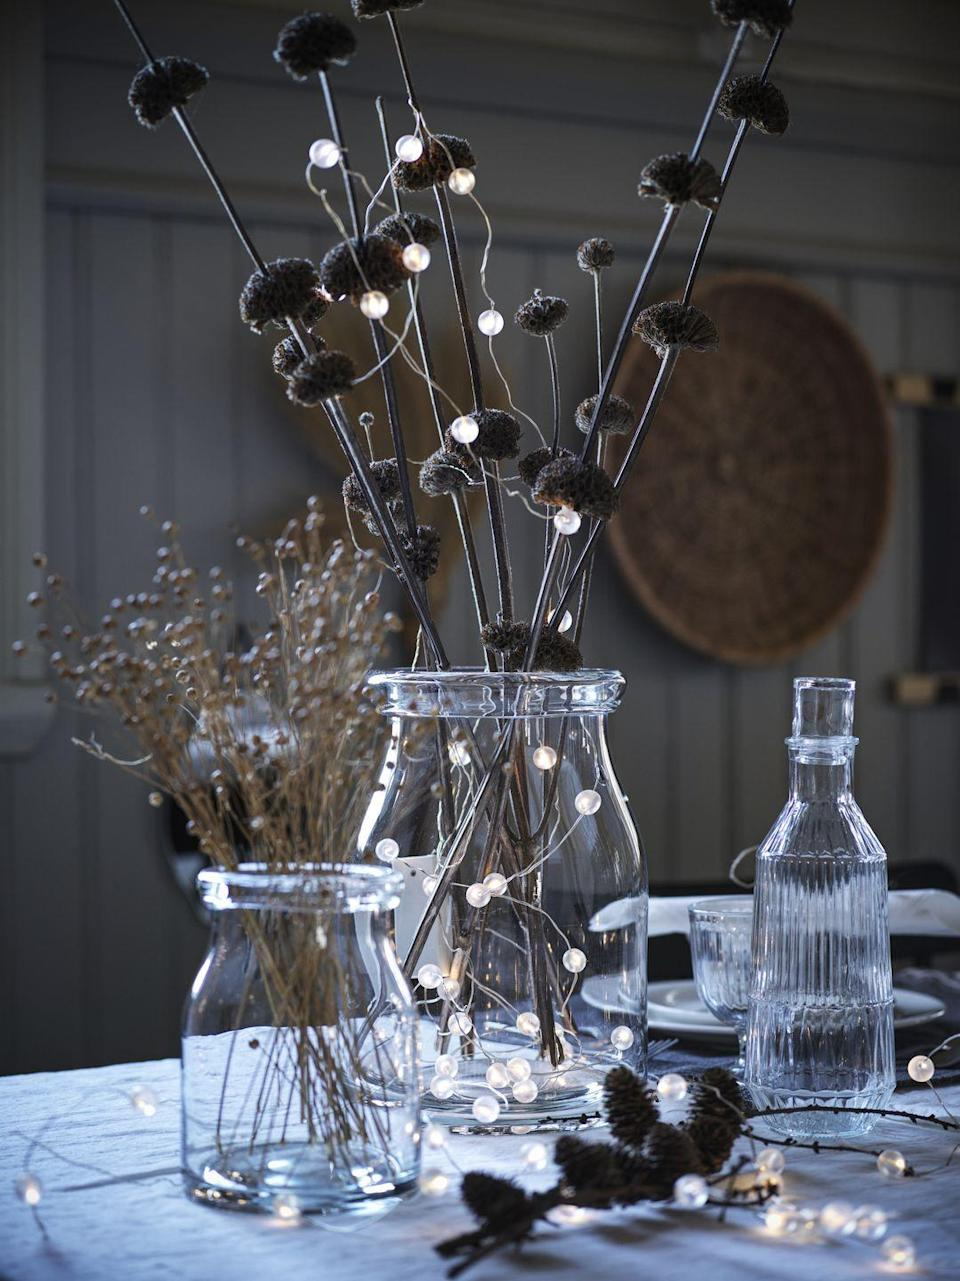 """<p>Create a warm glow this <a href=""""https://www.countryliving.com/uk/homes-interiors/interiors/g22198694/john-lewis-christmas-decoration-trends/"""" rel=""""nofollow noopener"""" target=""""_blank"""" data-ylk=""""slk:Christmas"""" class=""""link rapid-noclick-resp"""">Christmas</a> with IKEA's range of twinkling lights, twig trees and glass vases. </p><p>""""As we look forward to hosting friends and family again, it's a wonderful opportunity to embrace the Swedish concept of Mys ['mees'], focusing on slowing down and cosiness,"""" Rosheen says. </p><p>""""The Scandinavian tradition takes place during the longer and darker winter months, encouraging all to embrace home comforts and step away from the outside world.""""</p>"""